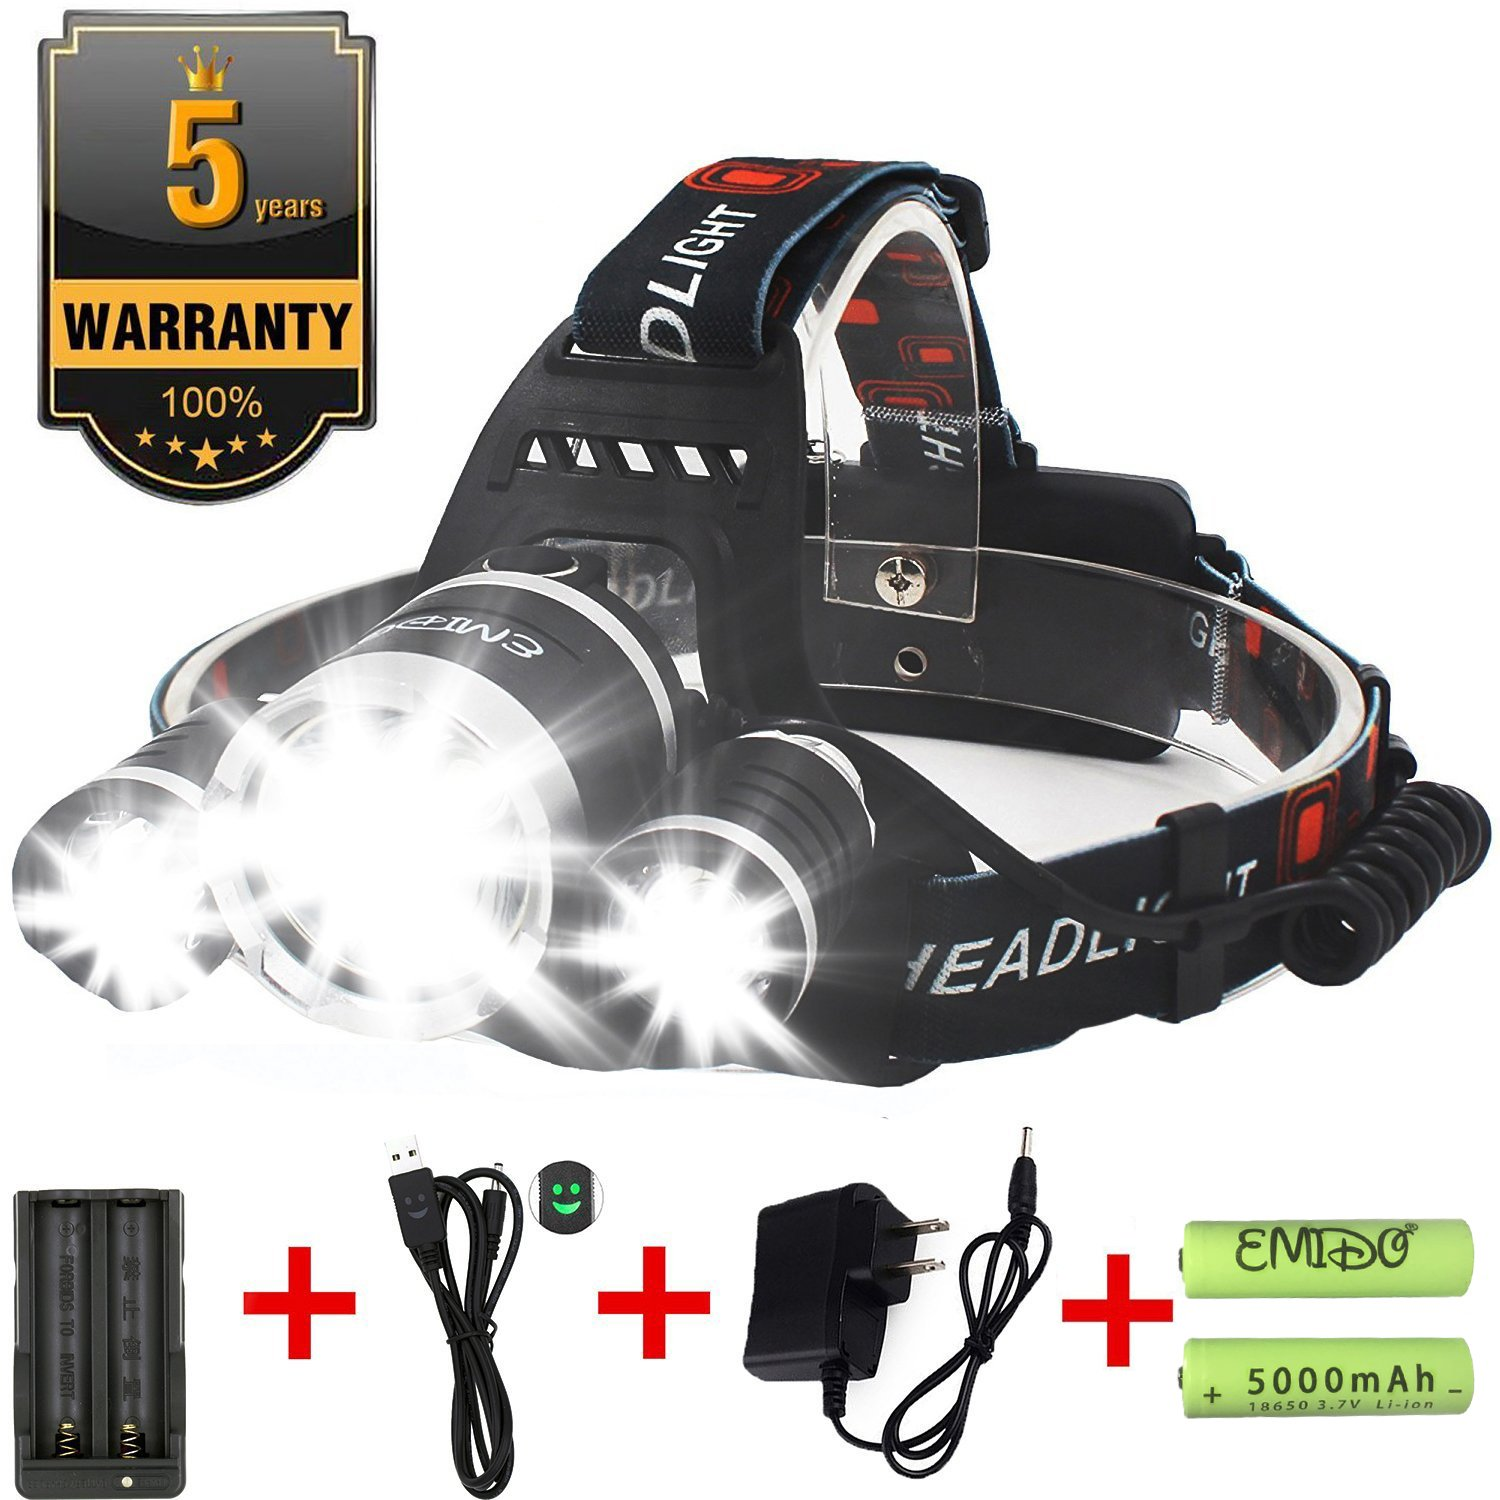 EMIDO LED Headlamp, 4 Modes LED Head Torch, 18650 Rechargeable Batteries Headlight Hard Hat Light Flashlight, for Reading Outdoor Running Camping Fishing Walking Hiking Riding